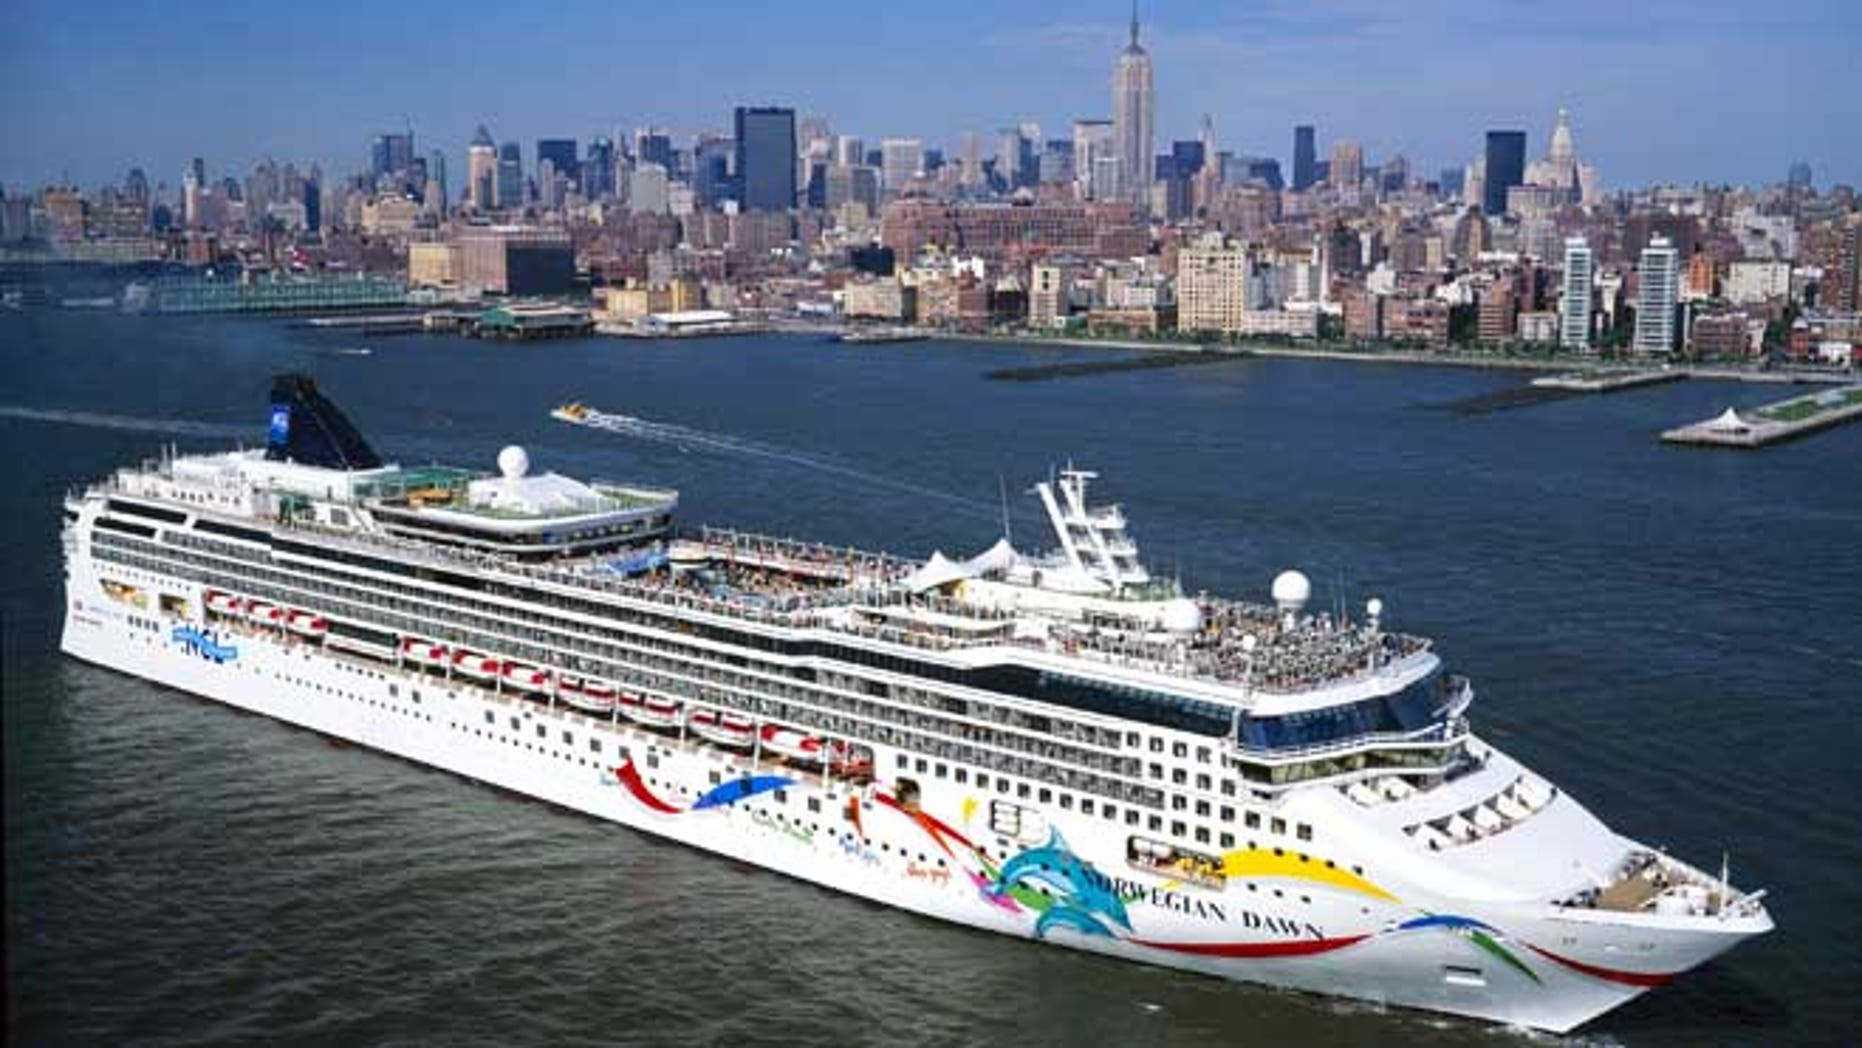 NEW YORK:  In this undated image provided by the Norwegian Cruise Line, luxury liner, The Norwegian Dawn, is shown on the Hudson River near New York City. The Republican National Convention may be held on the ship when docked at a New York City port instead of in New York City when the convention comes to town from August 30 through to September 2, 2004. The decision on where to hold the convention will be made by House Majority Leader Tom DeLay. The Norwegian Dawn is a 2,240 passenger capacity luxury cruise liner with approximately 15 decks as well as 14 bars.  (Photo by Norwegian Cruise Line via Getty Images)